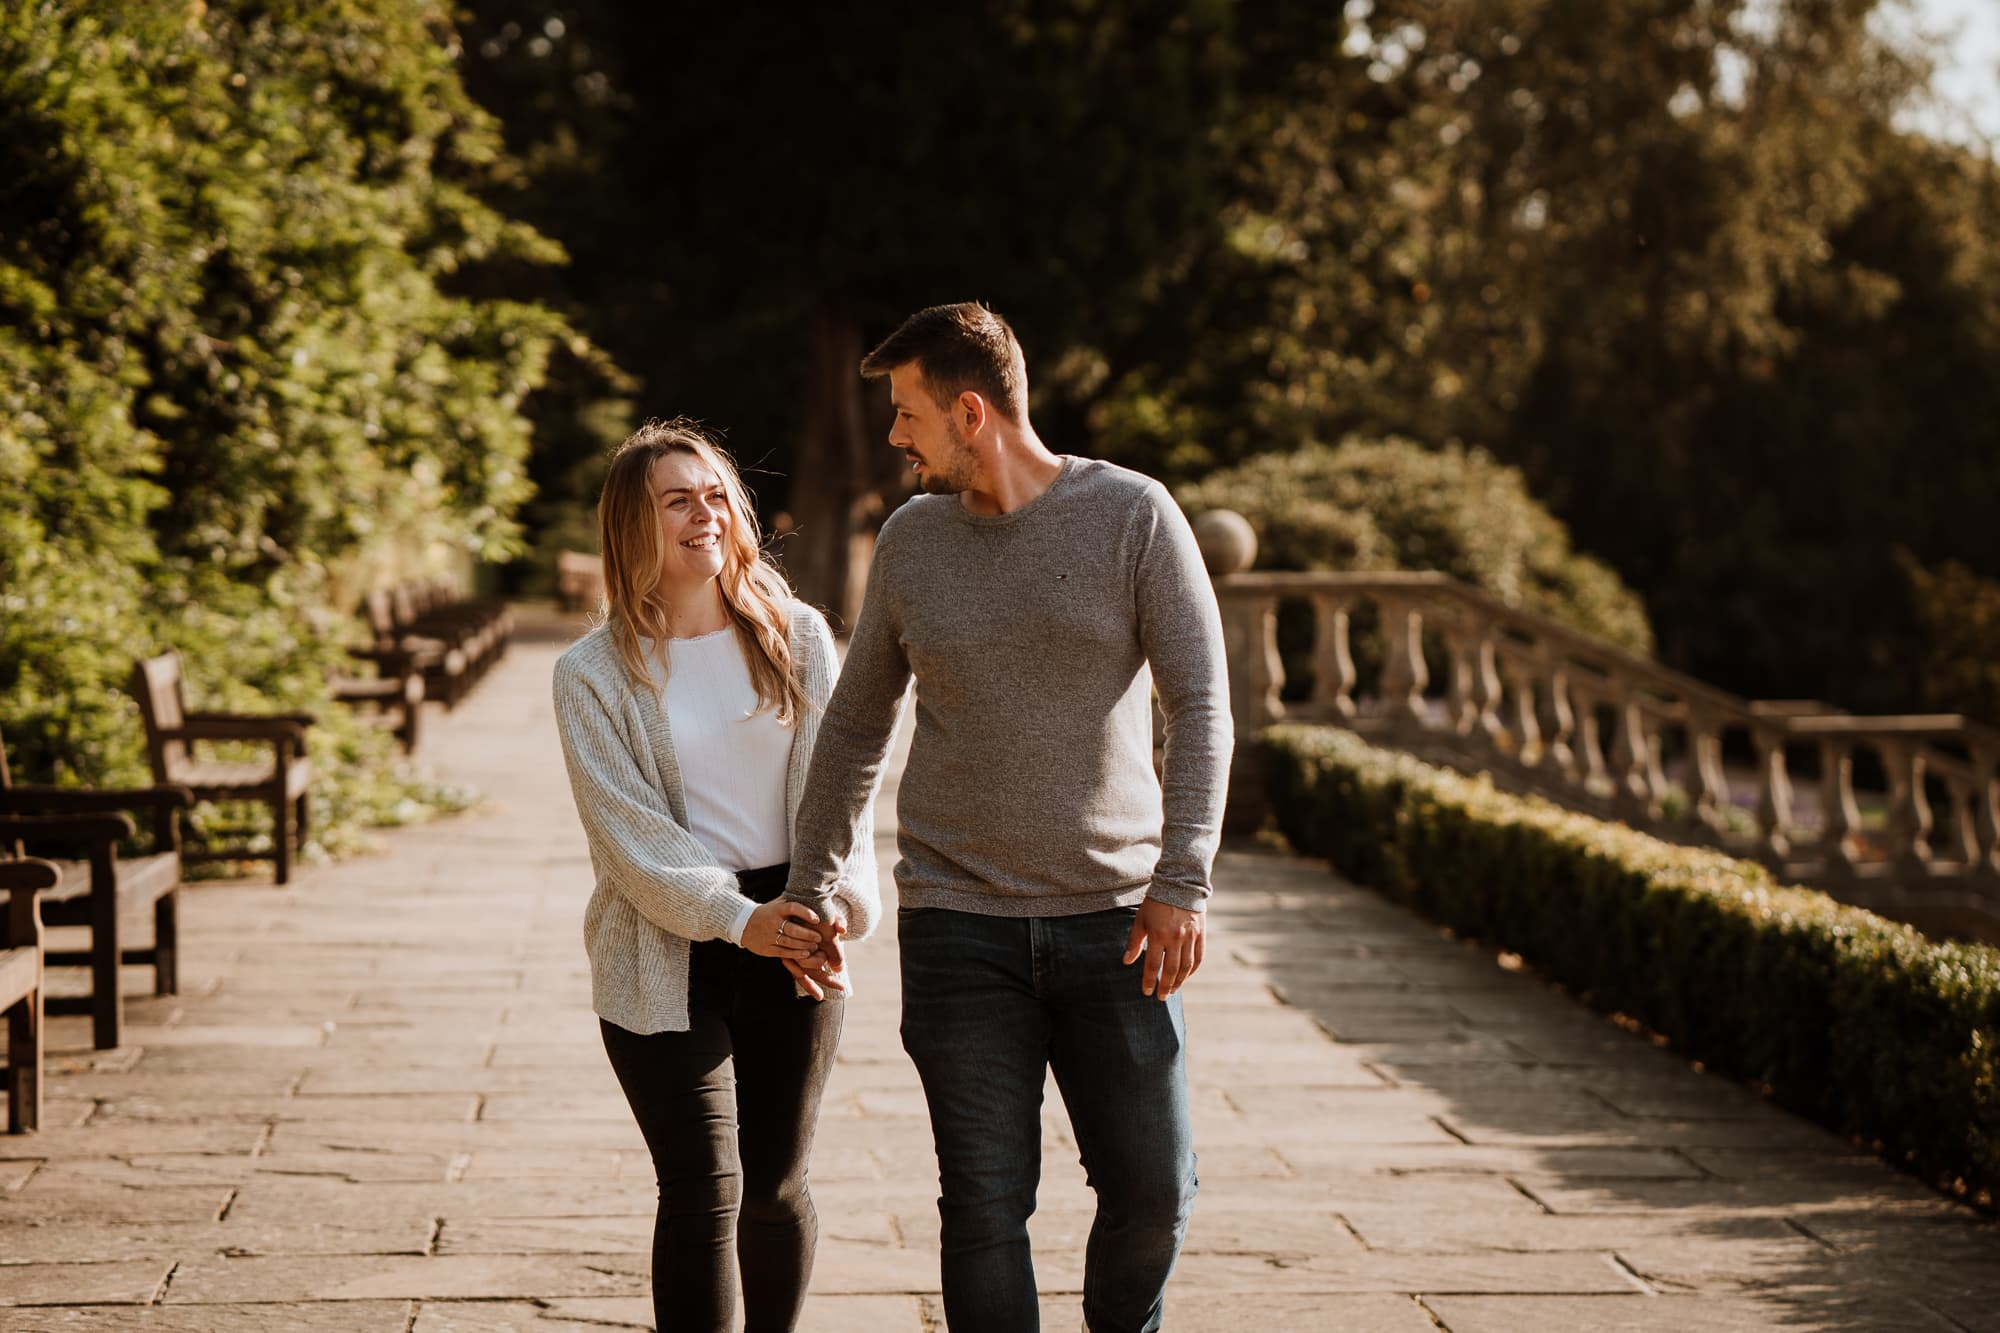 Engagemend couple walking and holding hands in park